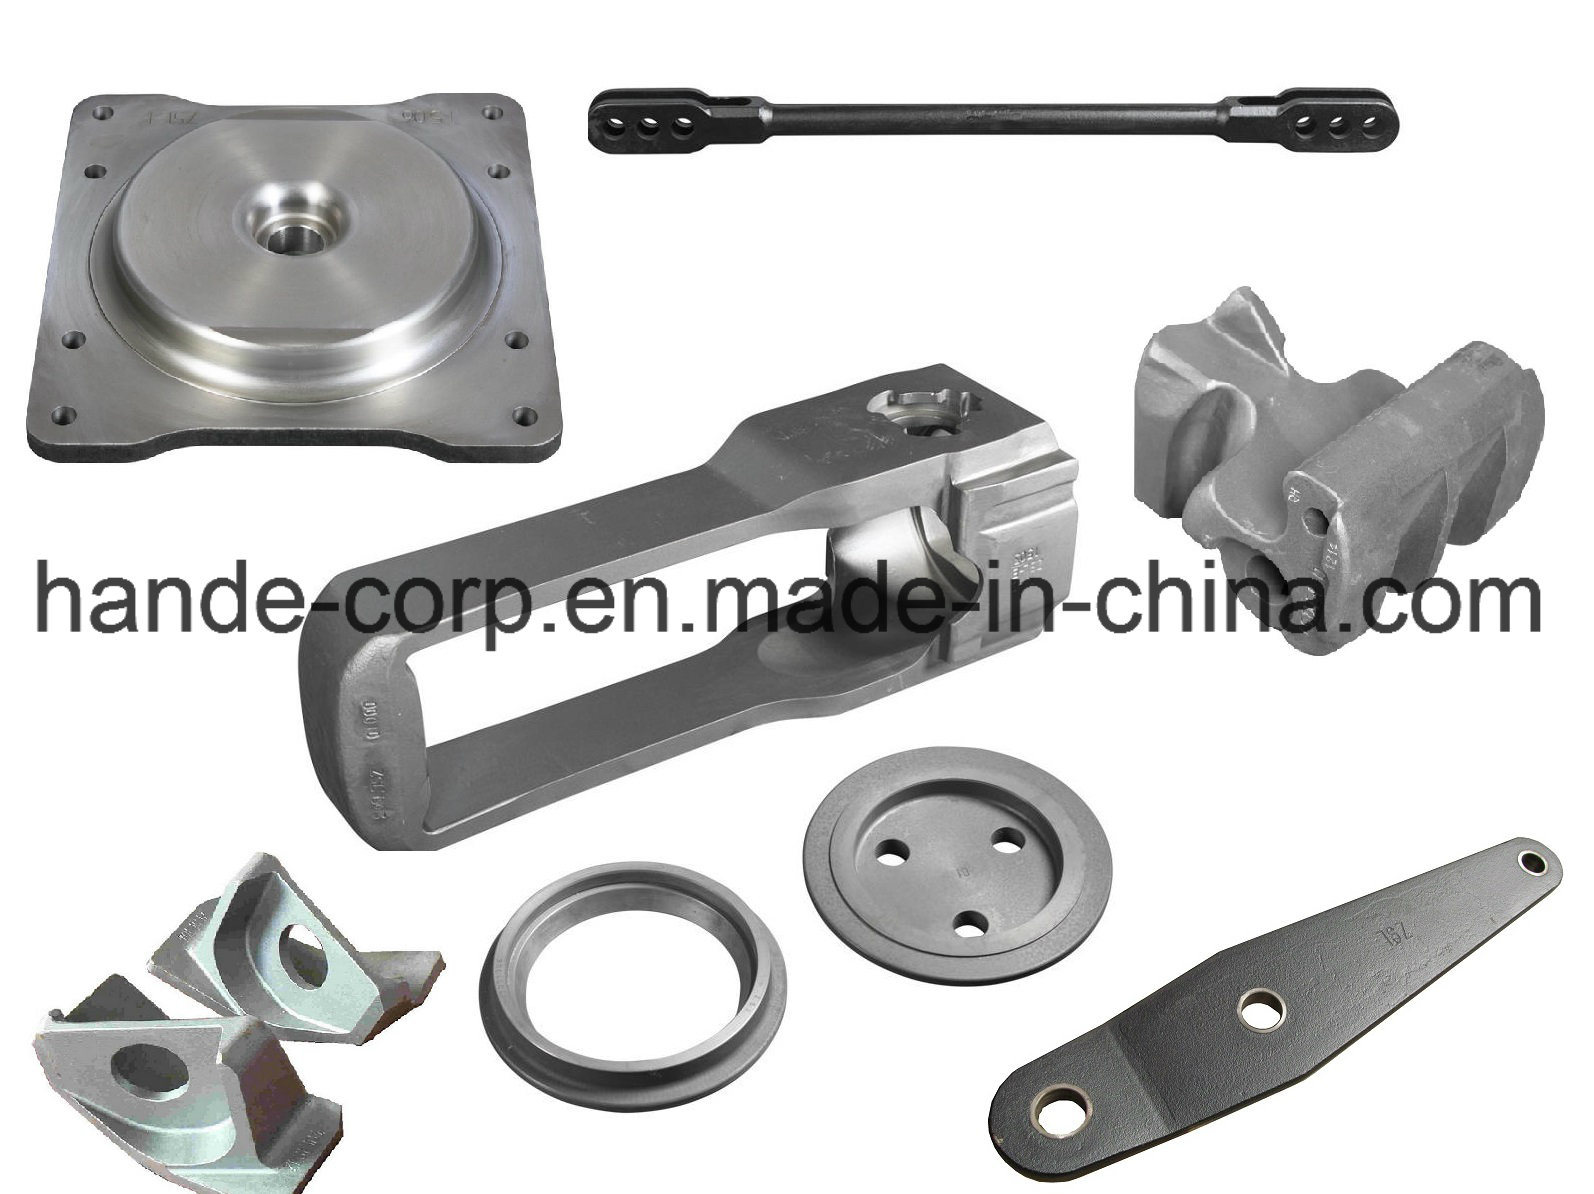 OEM Forging Railway Parts